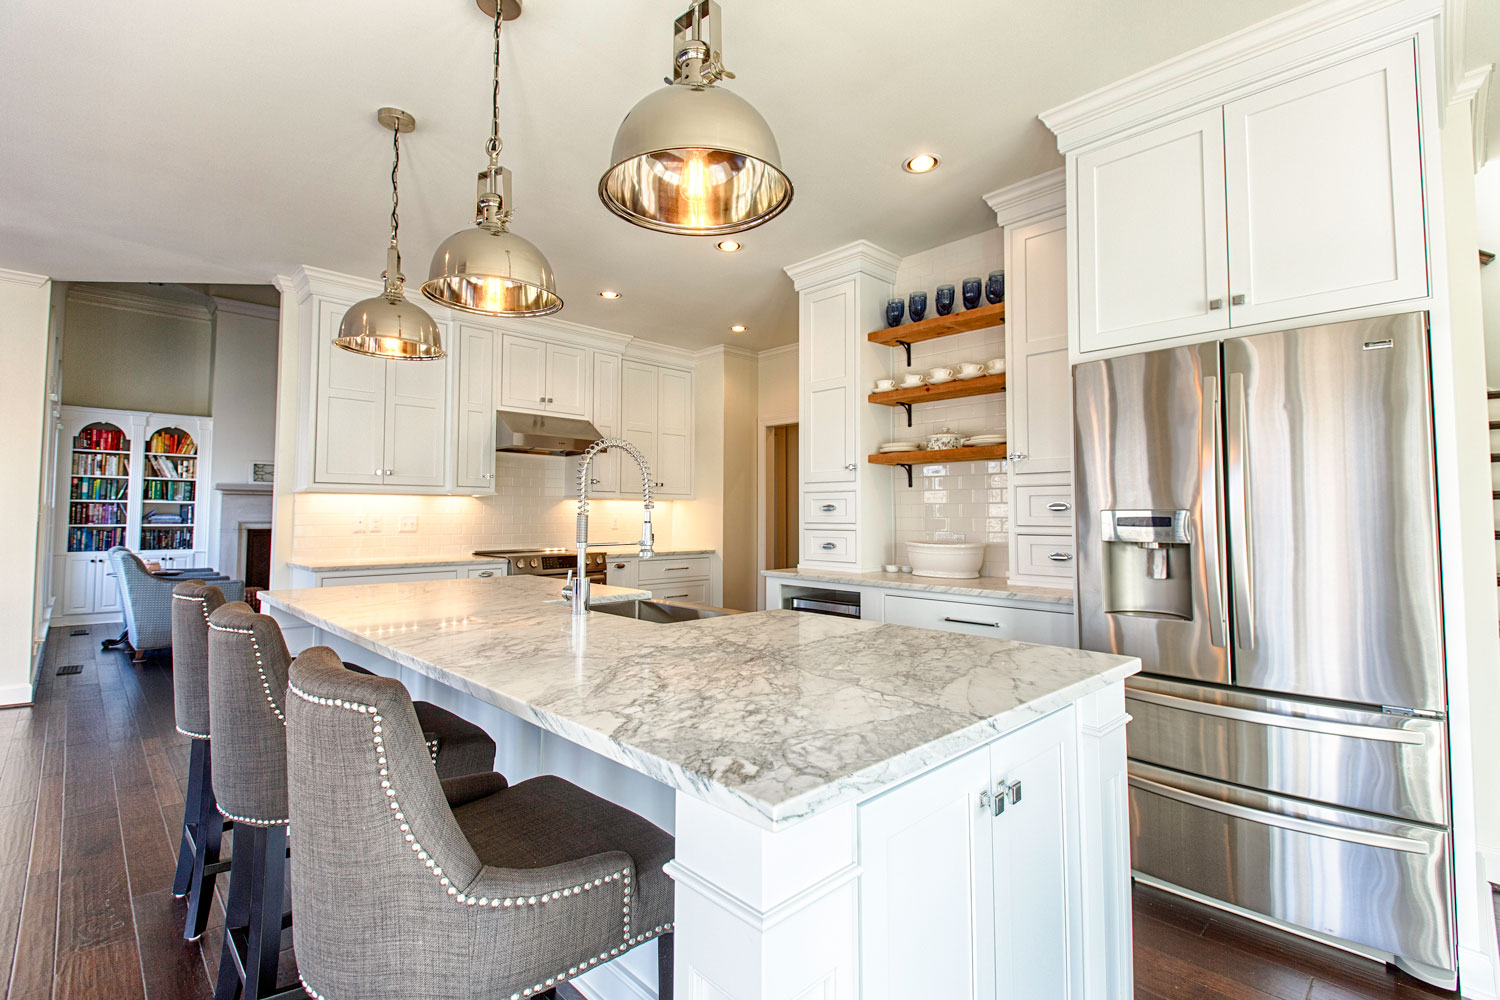 Professional Advice On Choosing Kitchen Countertop Materials ...